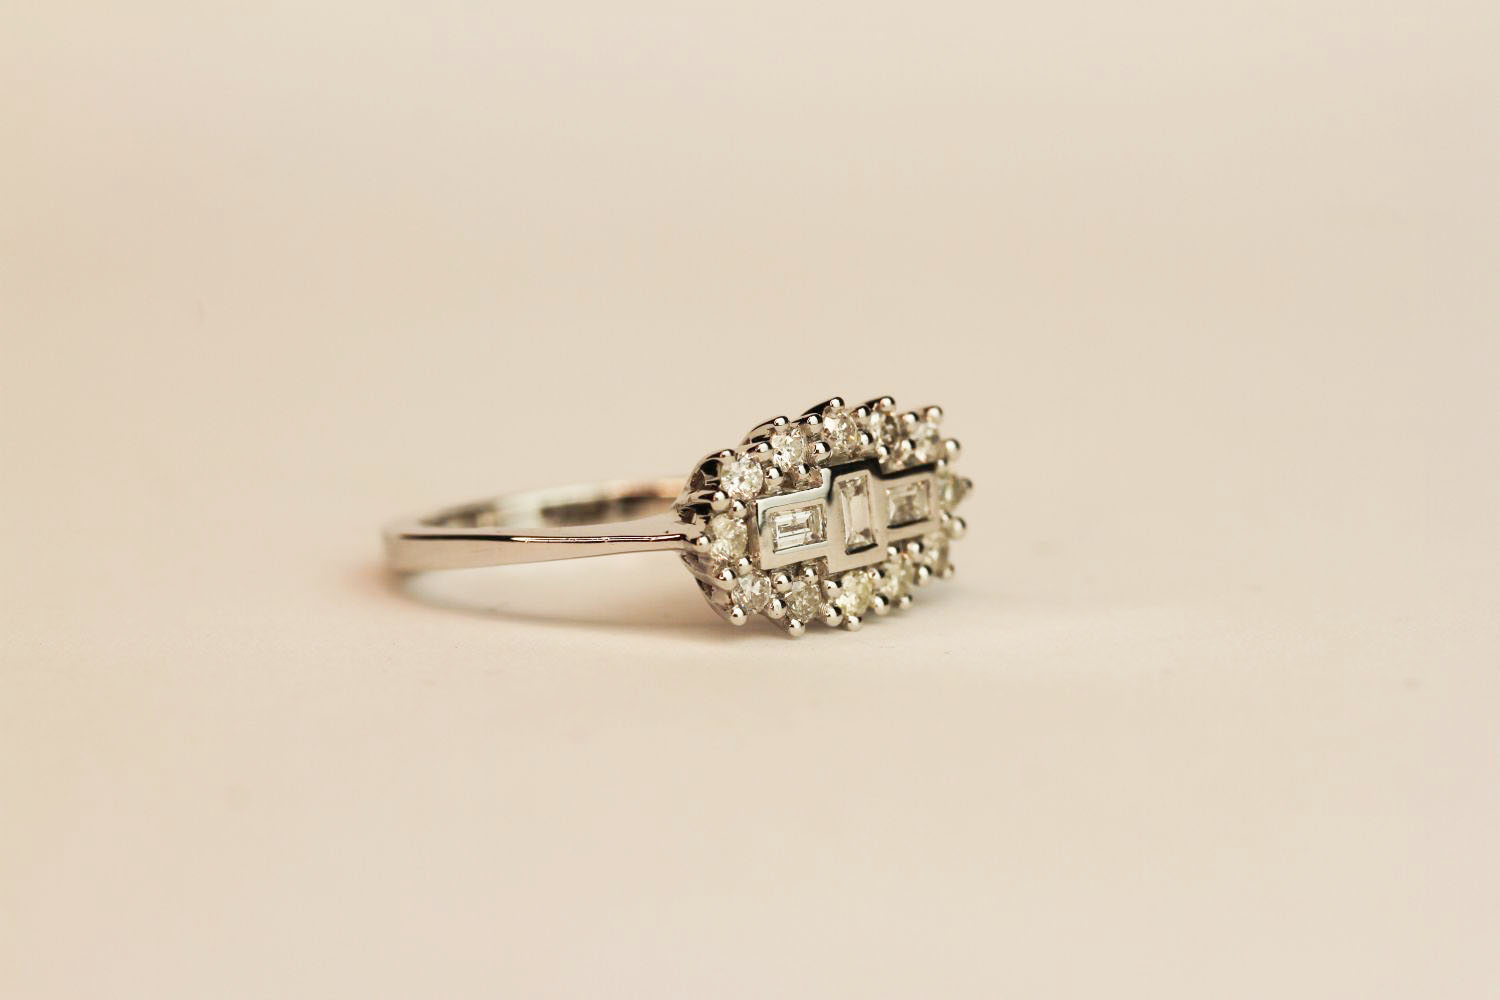 18ct white gold diamond fancy cluster ring. Baguette and round brilliant cut diamonds 0.50 ct, - Image 2 of 3